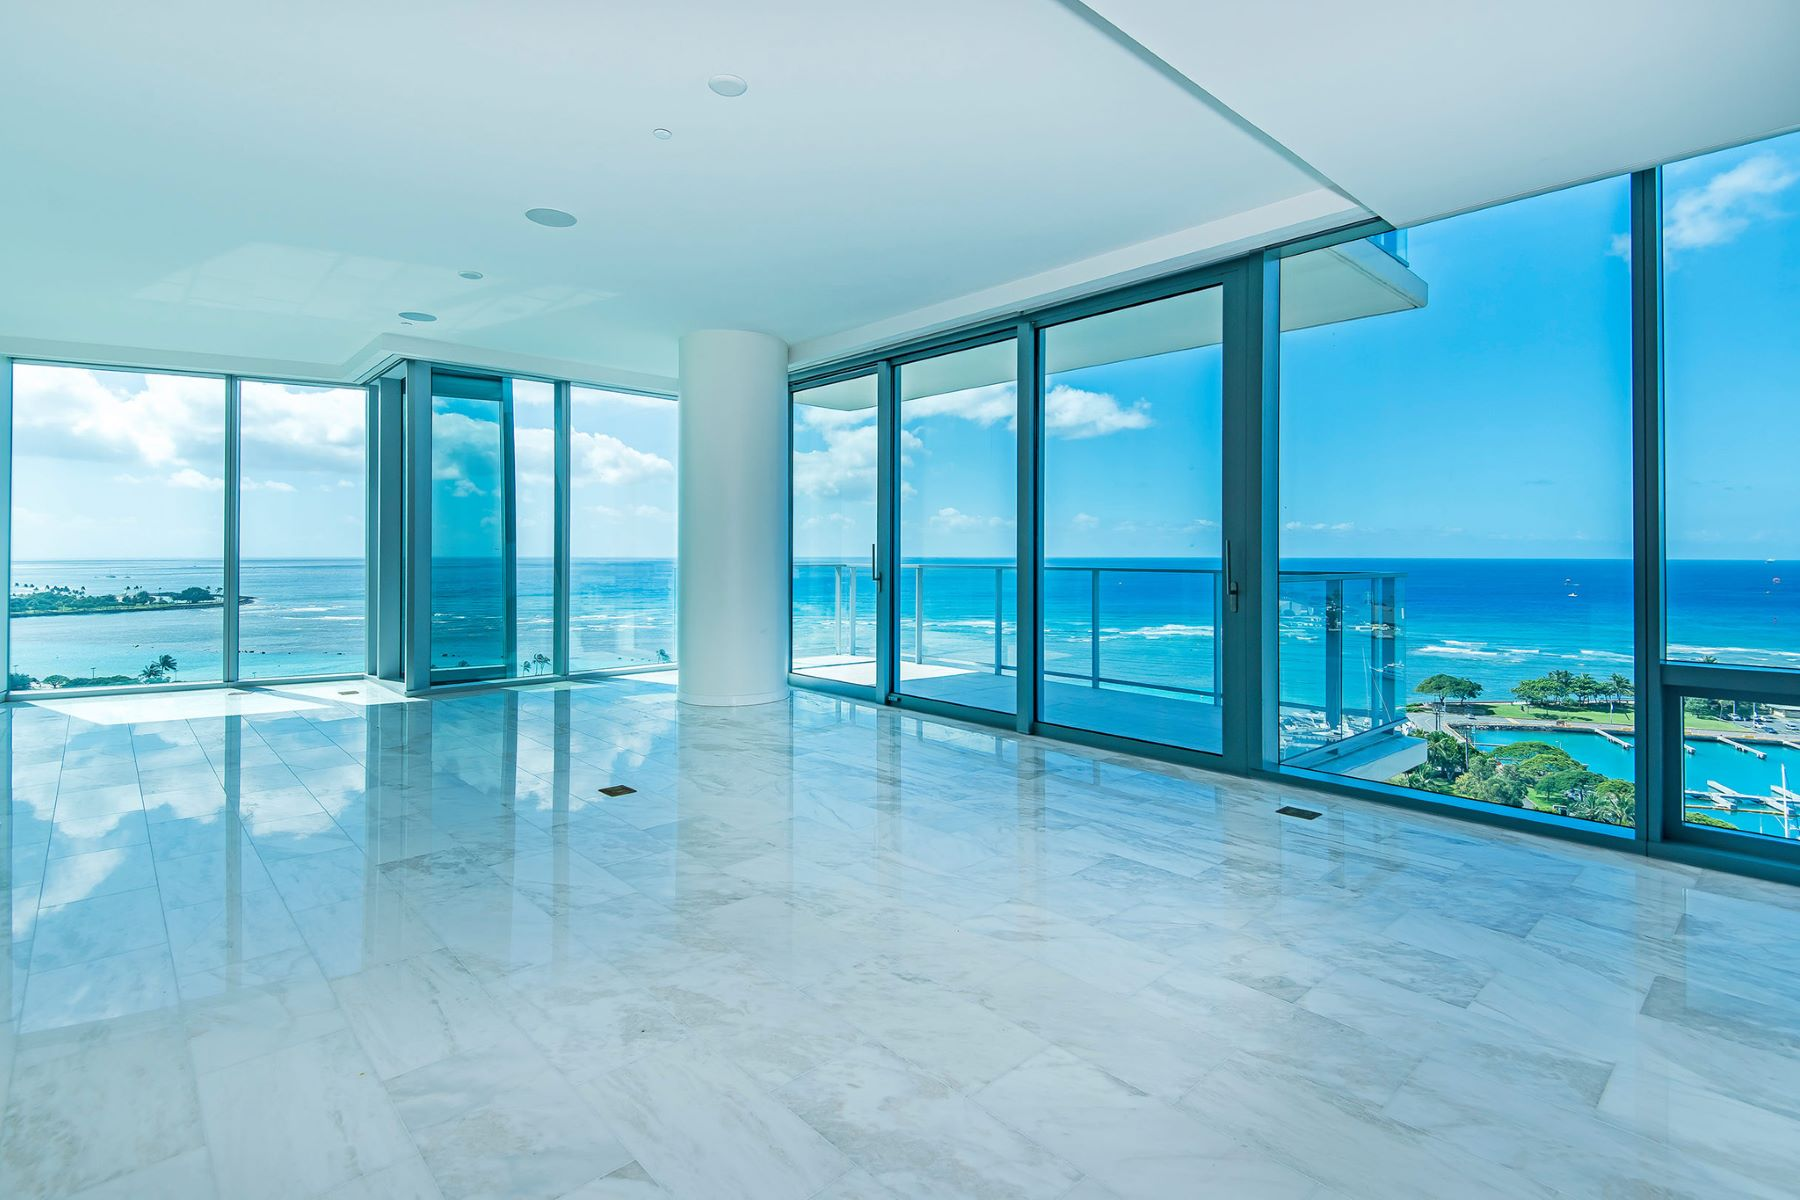 Condominium for Sale at Panoramic Views 1118 Ala Moana Blvd #1700 Honolulu, Hawaii 96814 United States